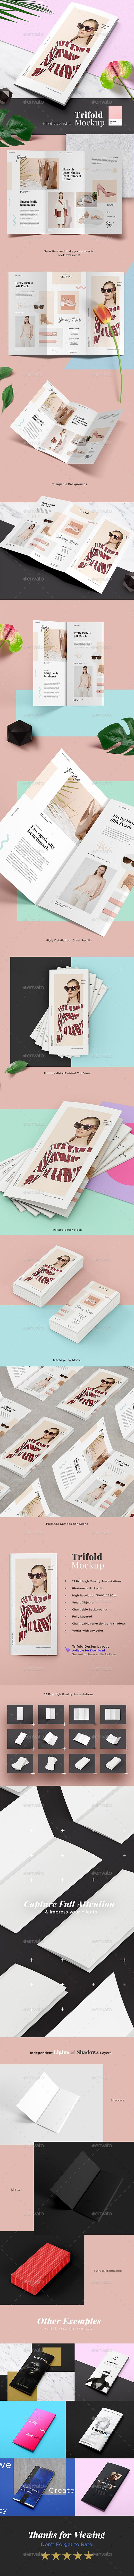 Fashion Trifold Mockup — Photoshop PSD #3 fold #trifold • Download ➝ https://graphicriver.net/item/fashion-trifold-mockup/19579977?ref=pxcr